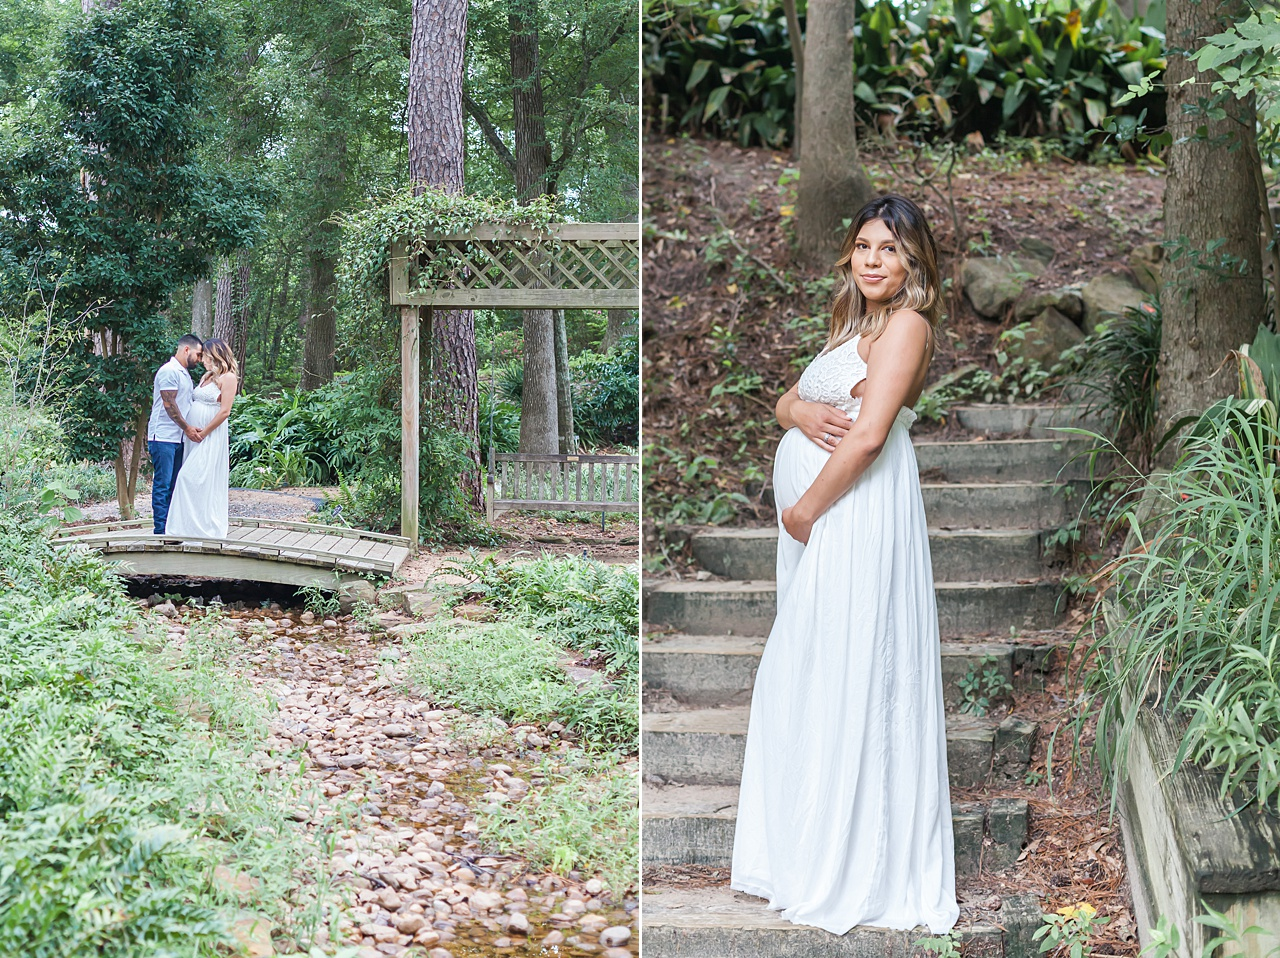 mercer botanical garden maternity photo session by kristal bean photography